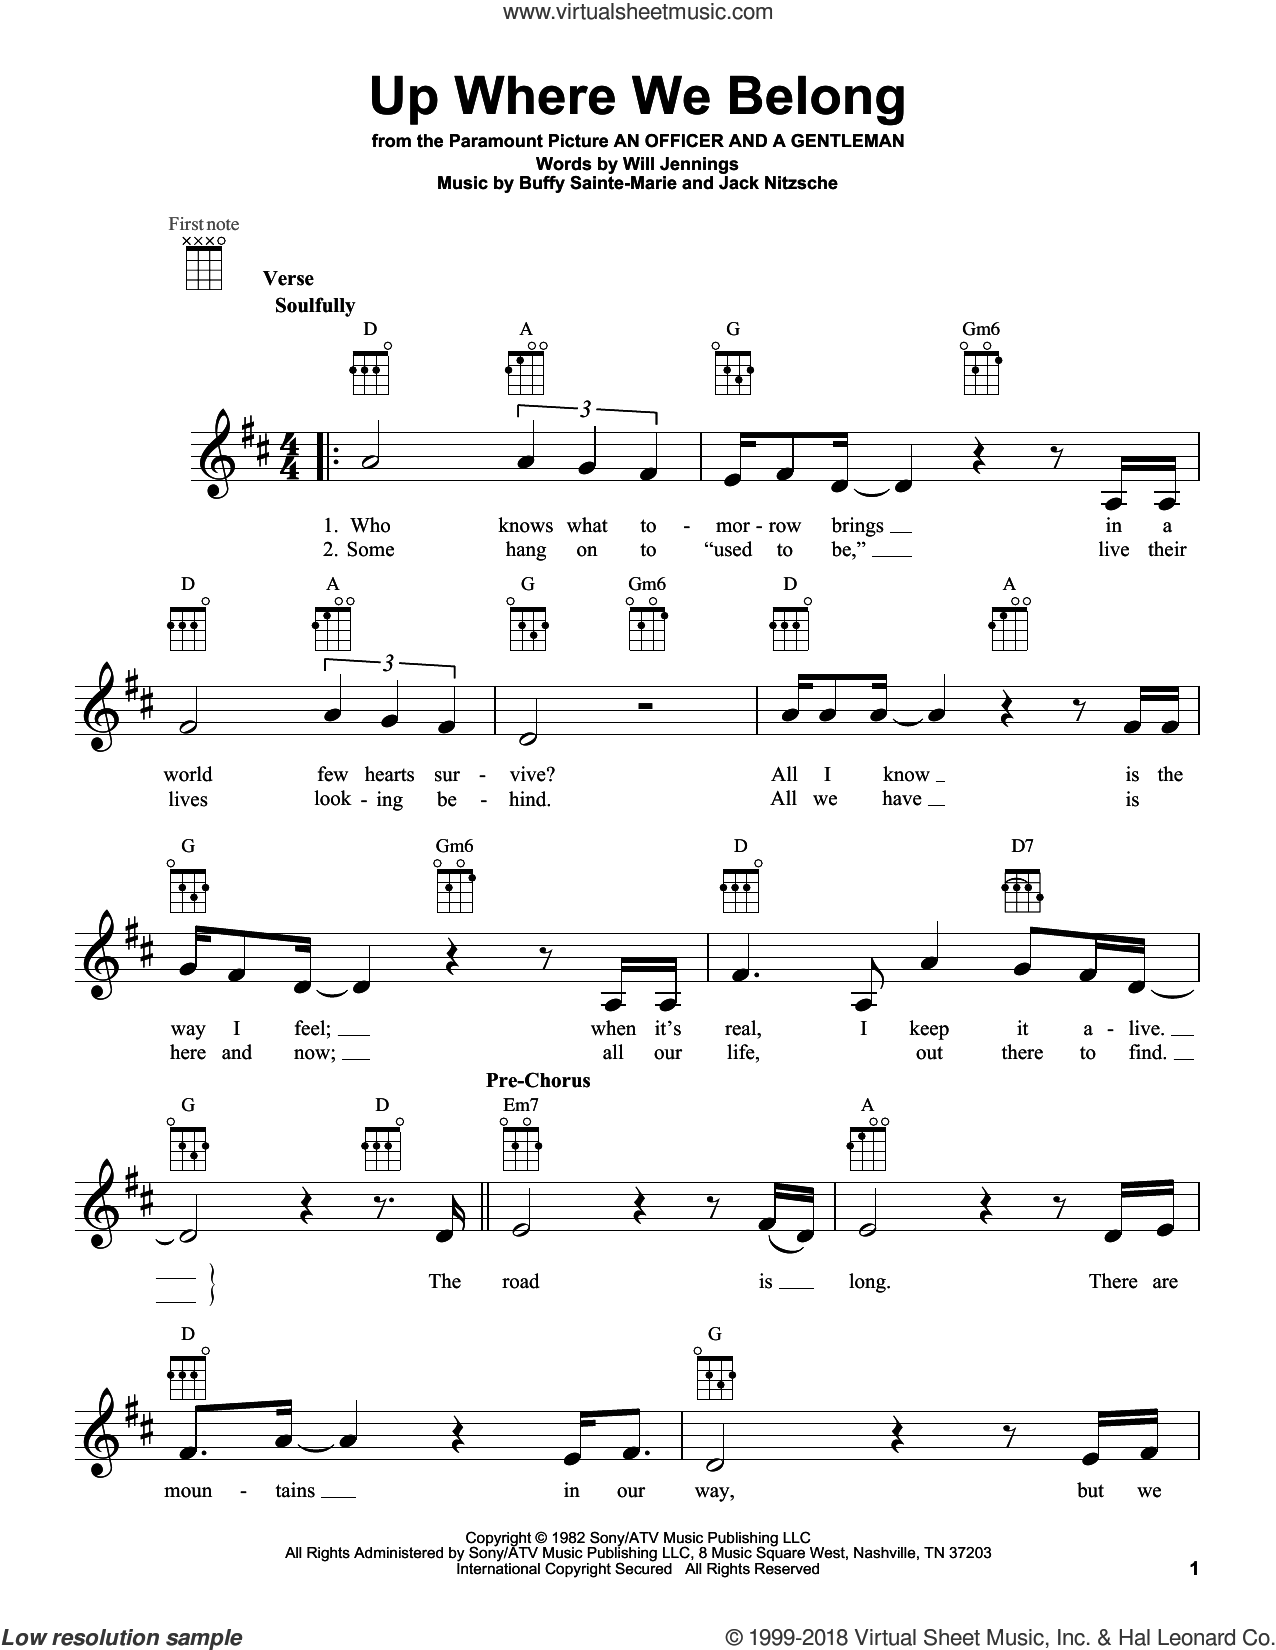 Up Where We Belong sheet music for ukulele by Joe Cocker & Jennifer Warnes and BeBe and CeCe Winans, intermediate skill level